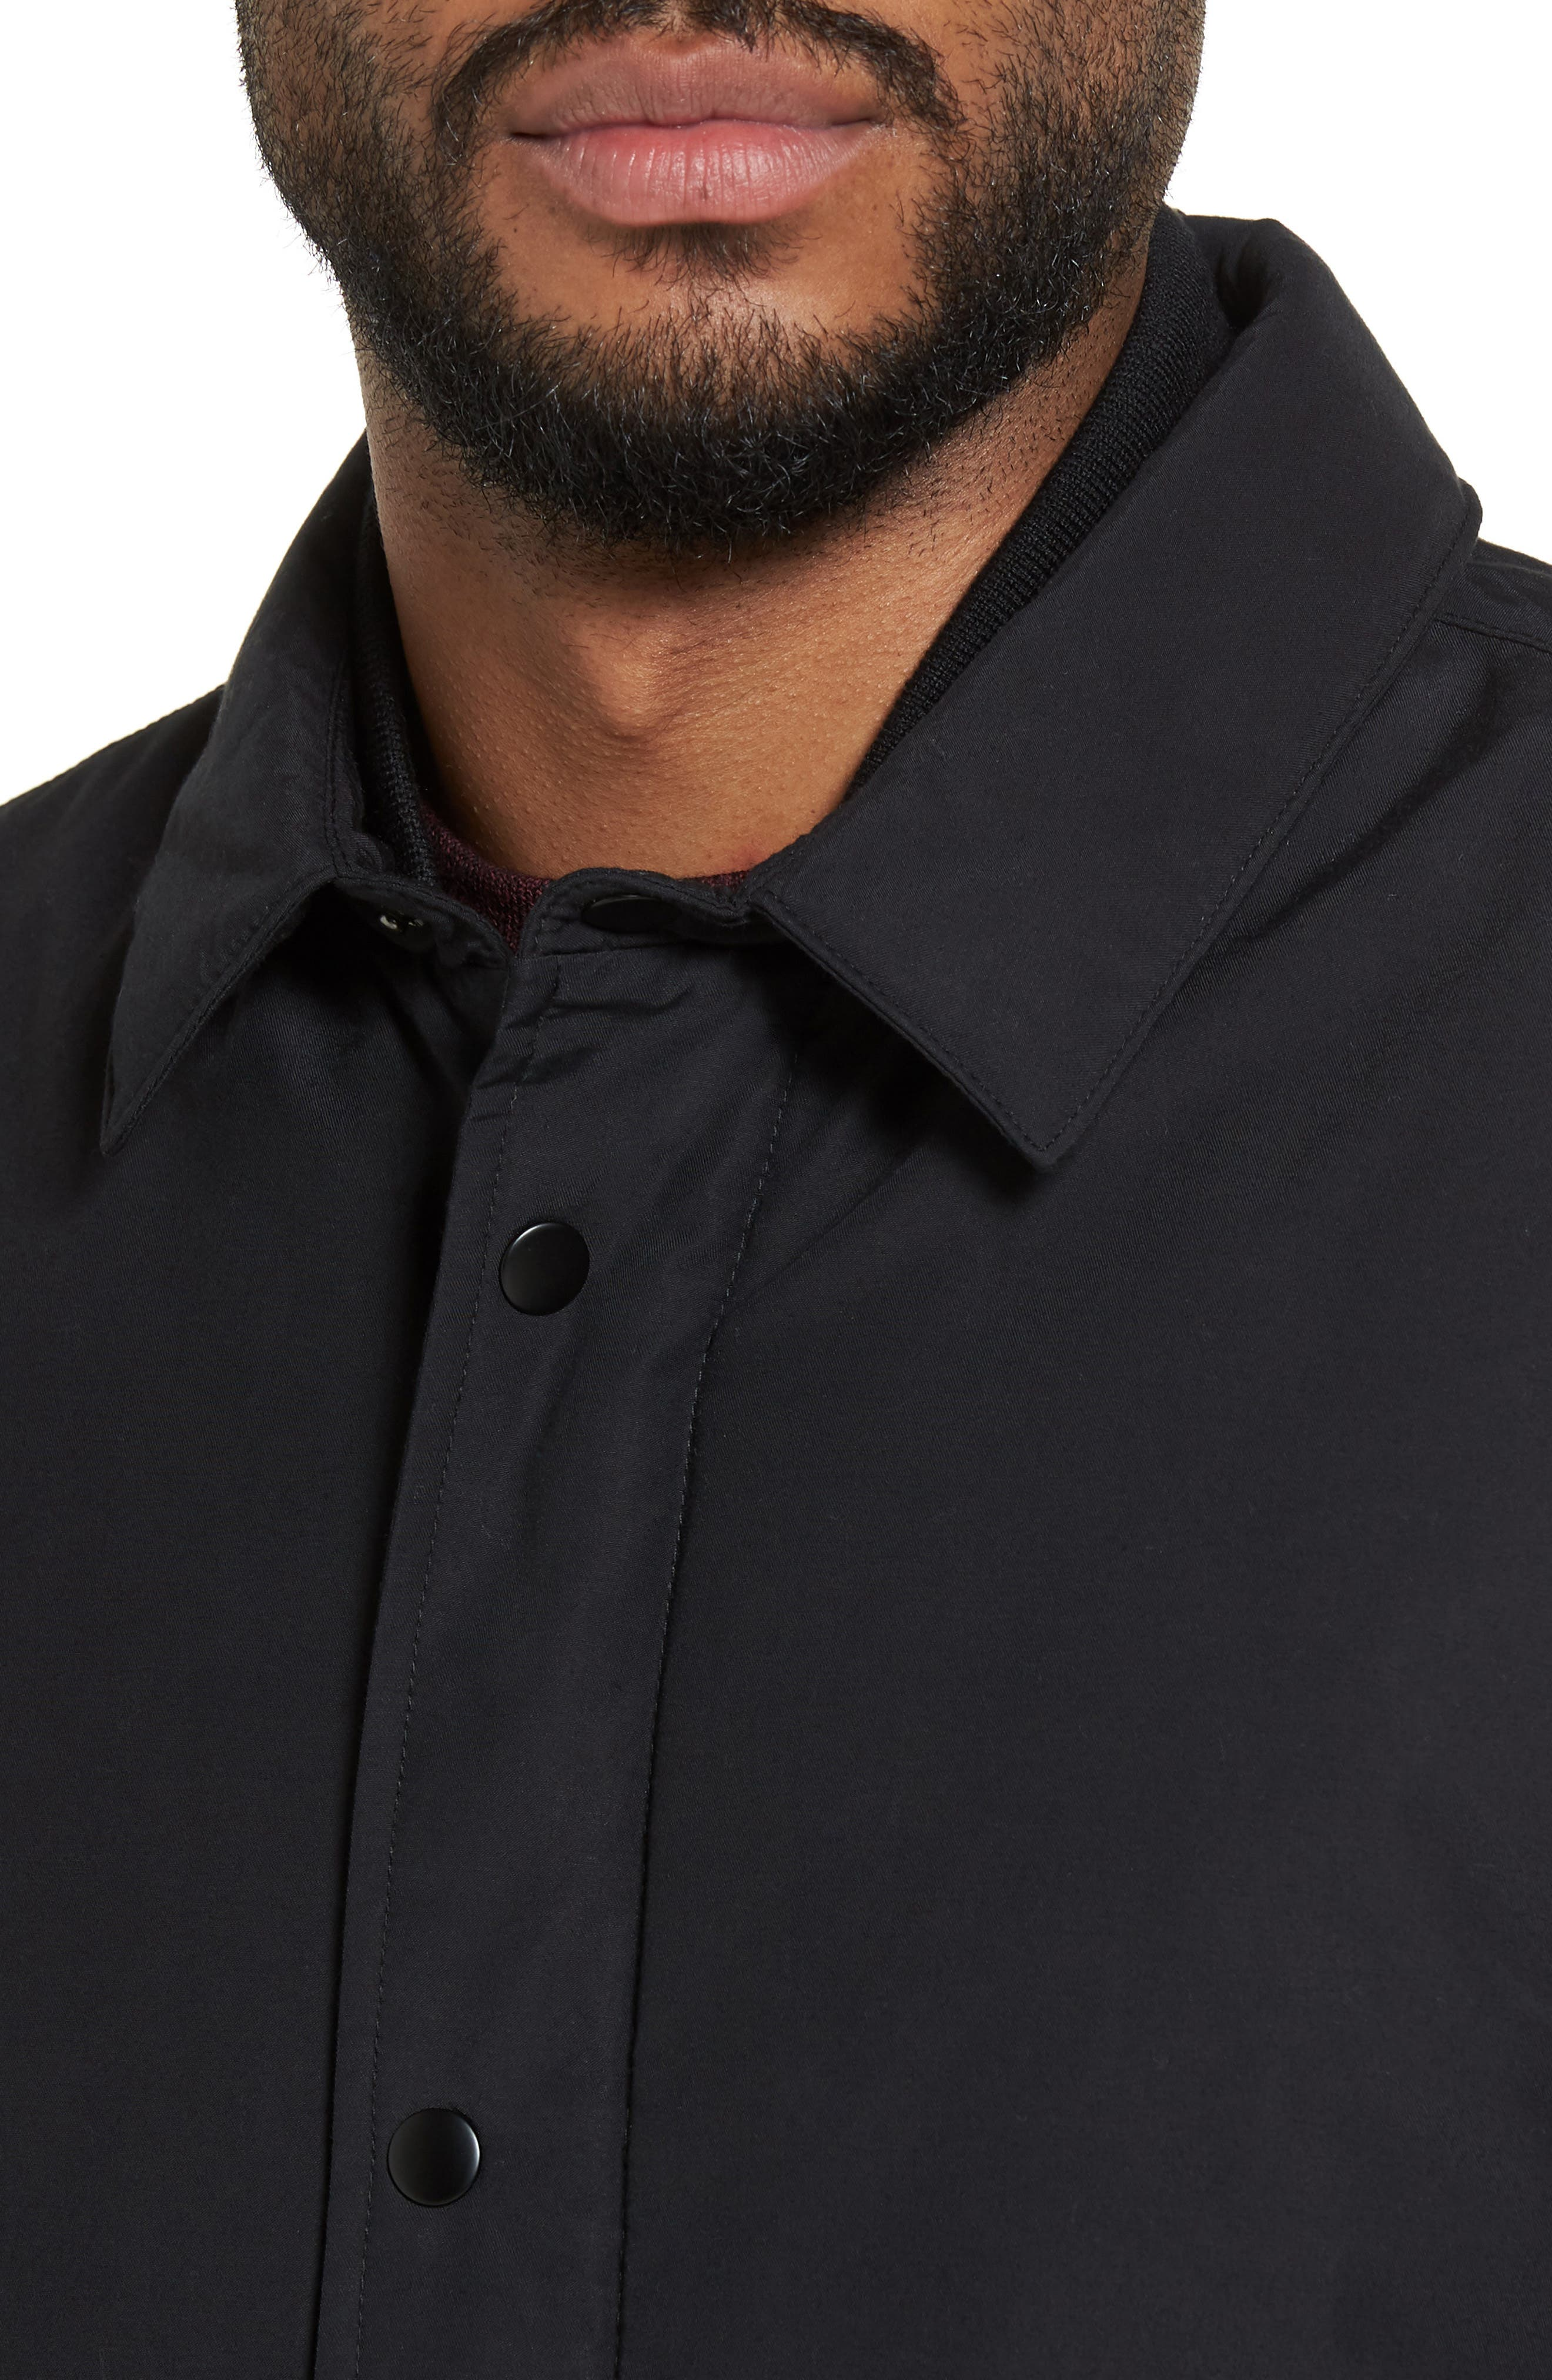 Collared Bomber Jacket,                             Alternate thumbnail 4, color,                             001